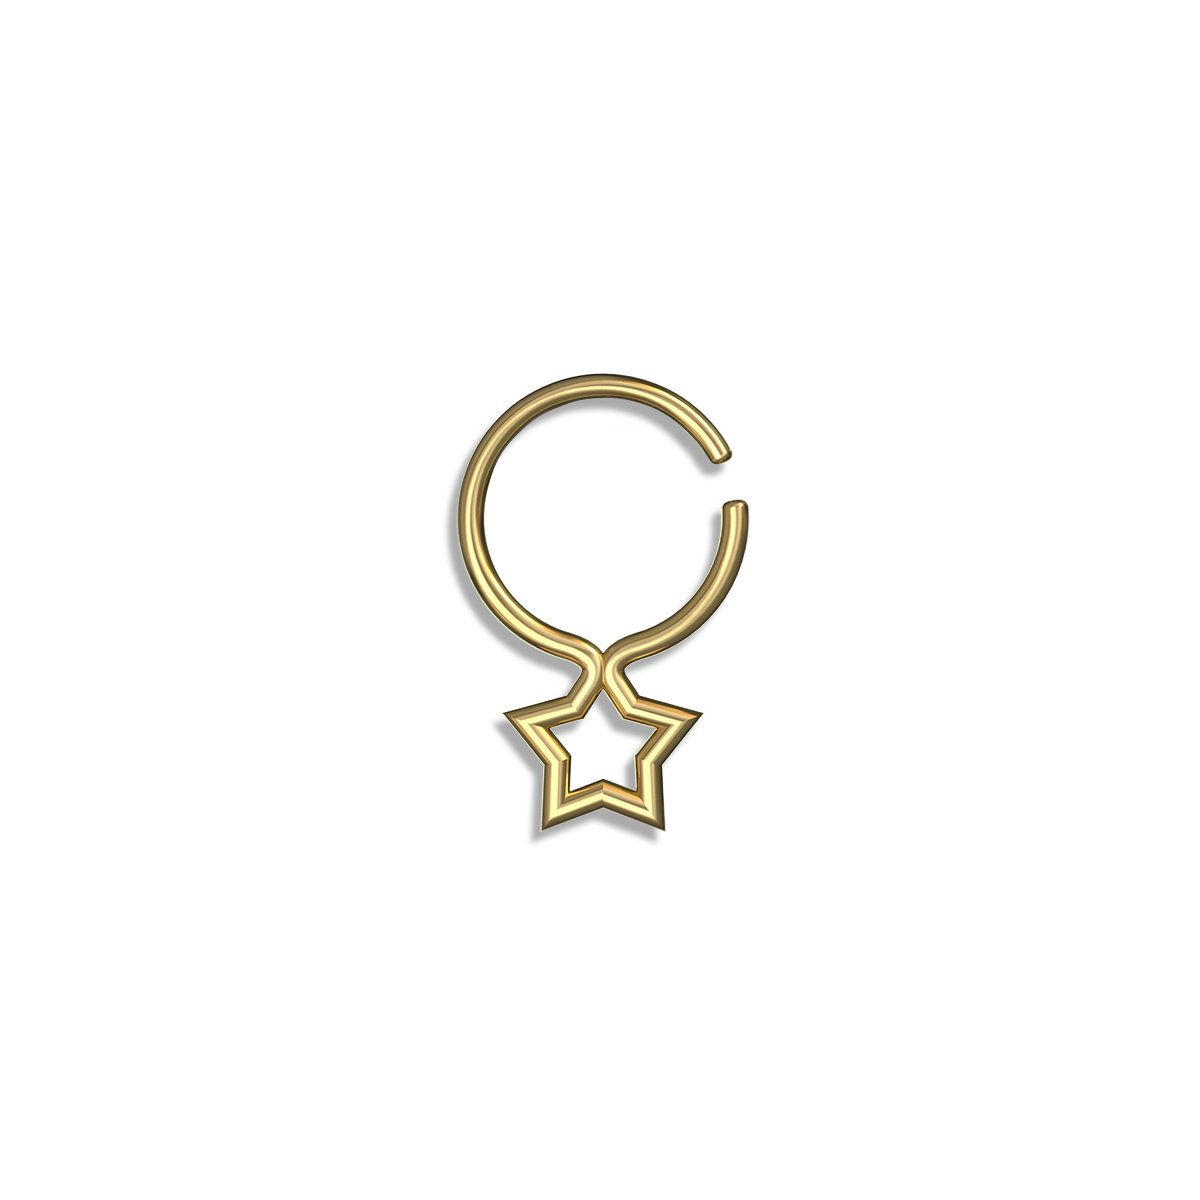 Unique septum ring , Septum , Male septum ring , Male septum , unique septum , gold septum ring , spetum , cool septum ring, Free Shipping #SilverSeptumRing #septums #unique #septum #free #SeptumEarring #SeptumPiercing #gold #jewelry #CoolSeptum